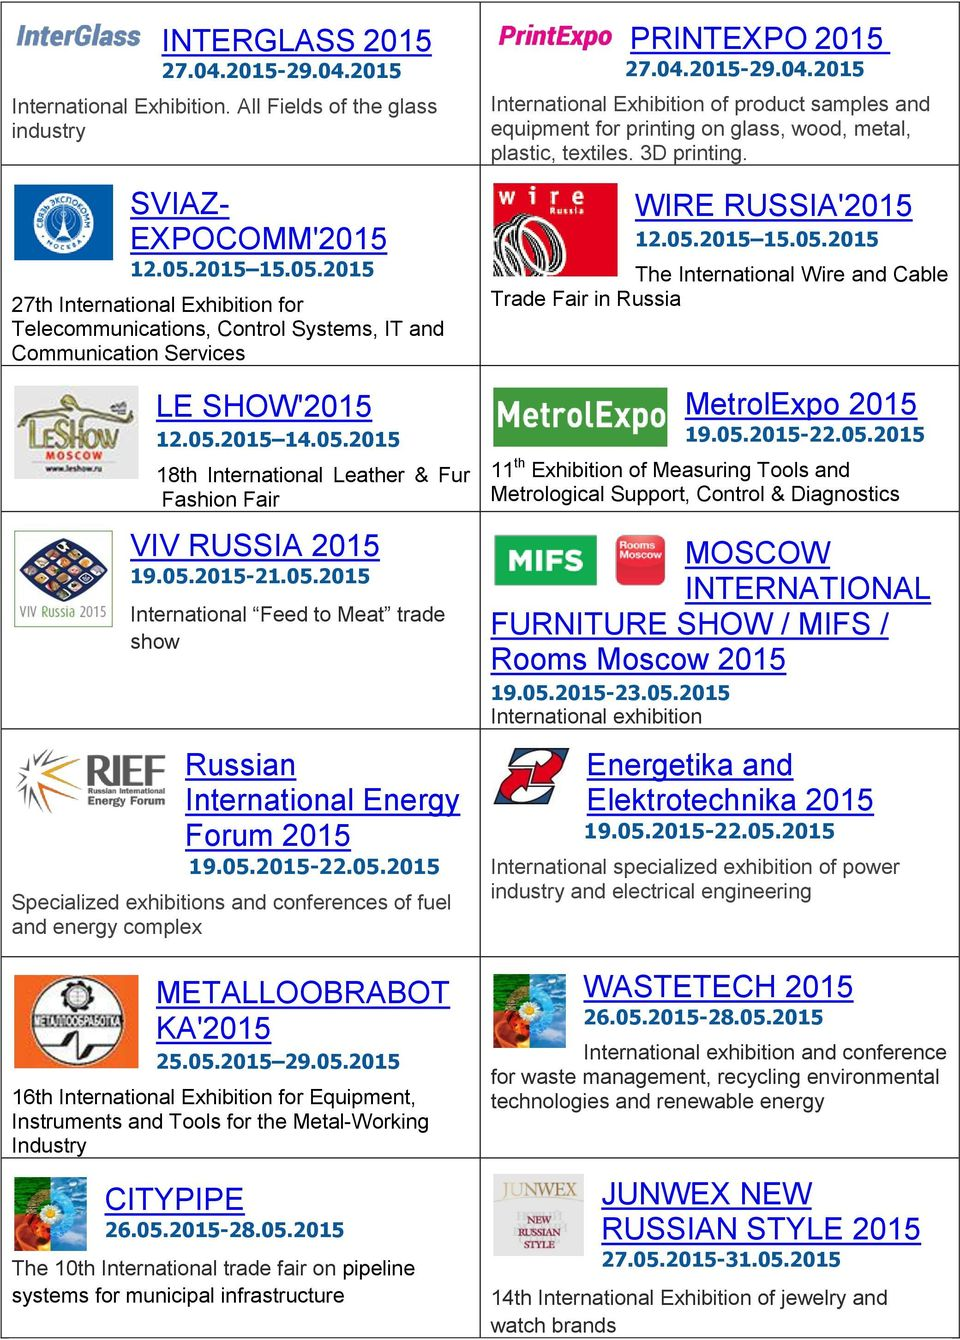 05.2015-21.05.2015 International Feed to Meat trade show Russian International Energy Forum 2015 19.05.2015-22.05.2015 Specialized exhibitions and conferences of fuel and energy complex METALLOOBRABOT KA'2015 25.